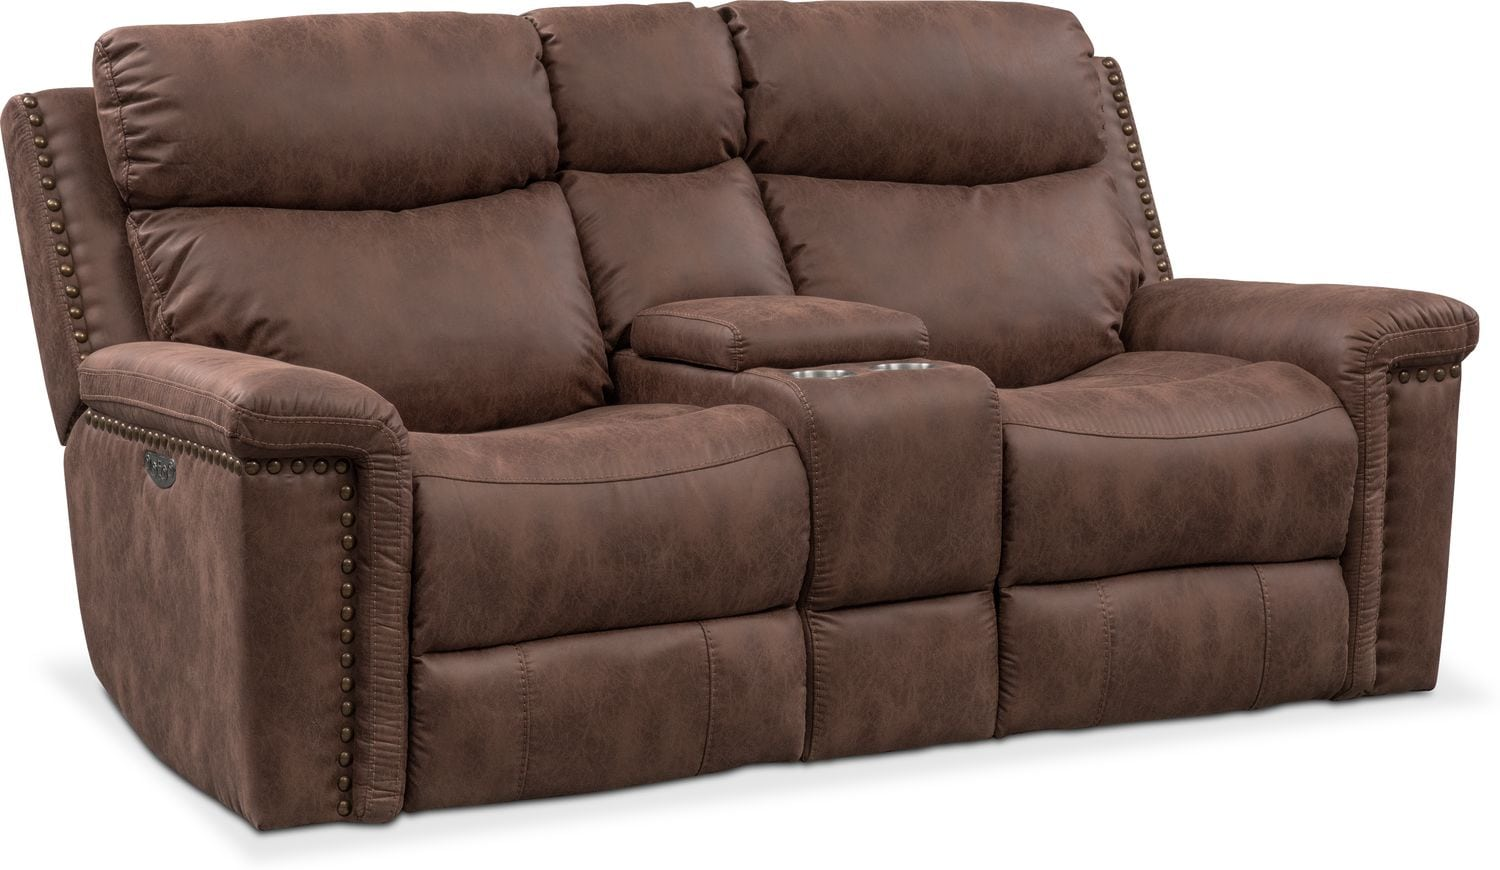 Living Room Furniture - Montana Dual Power Reclining Loveseat with Console